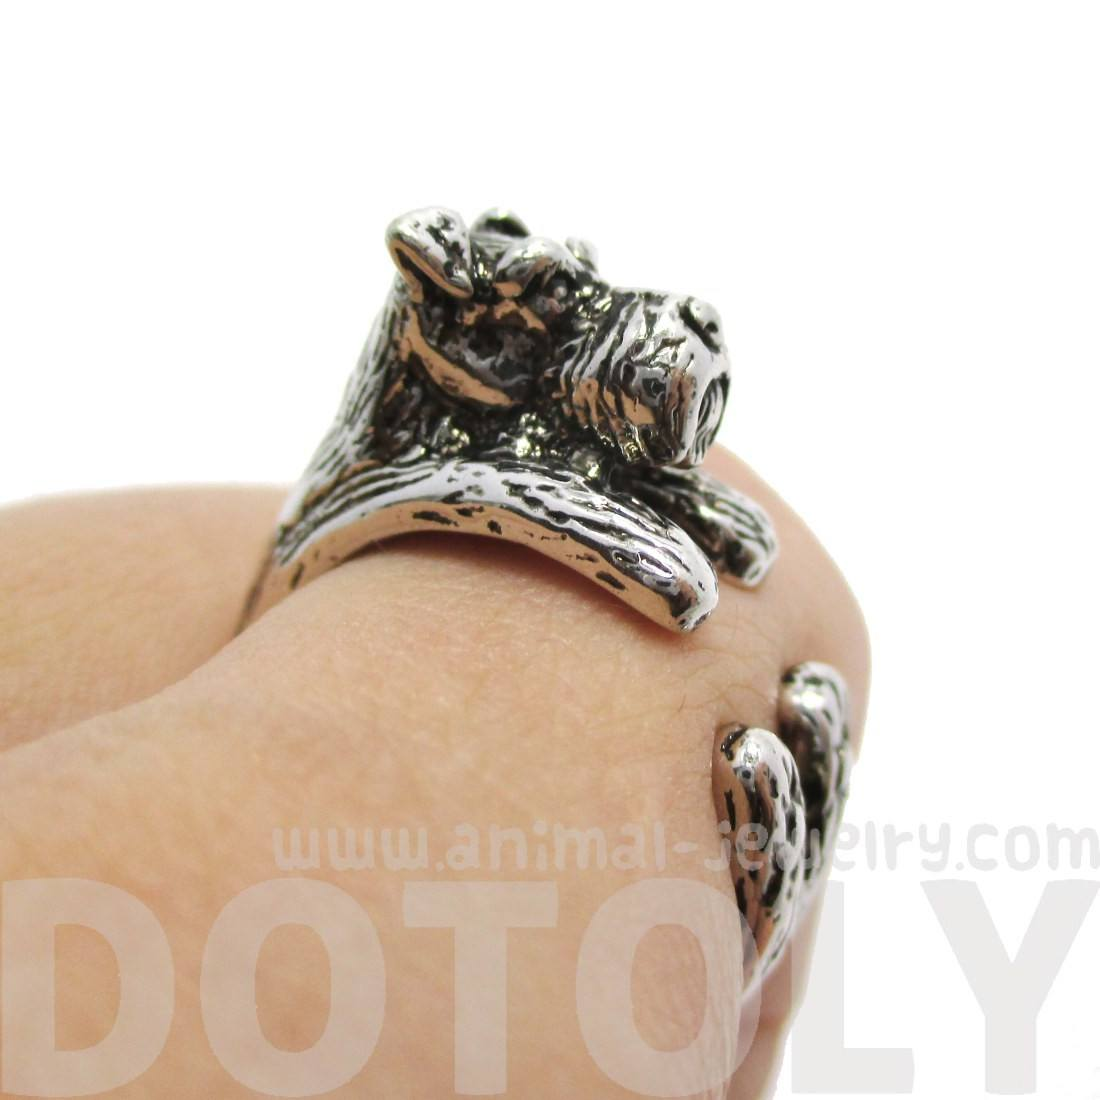 Schnauzer Dog Shaped Animal Wrap Ring in Shiny Silver